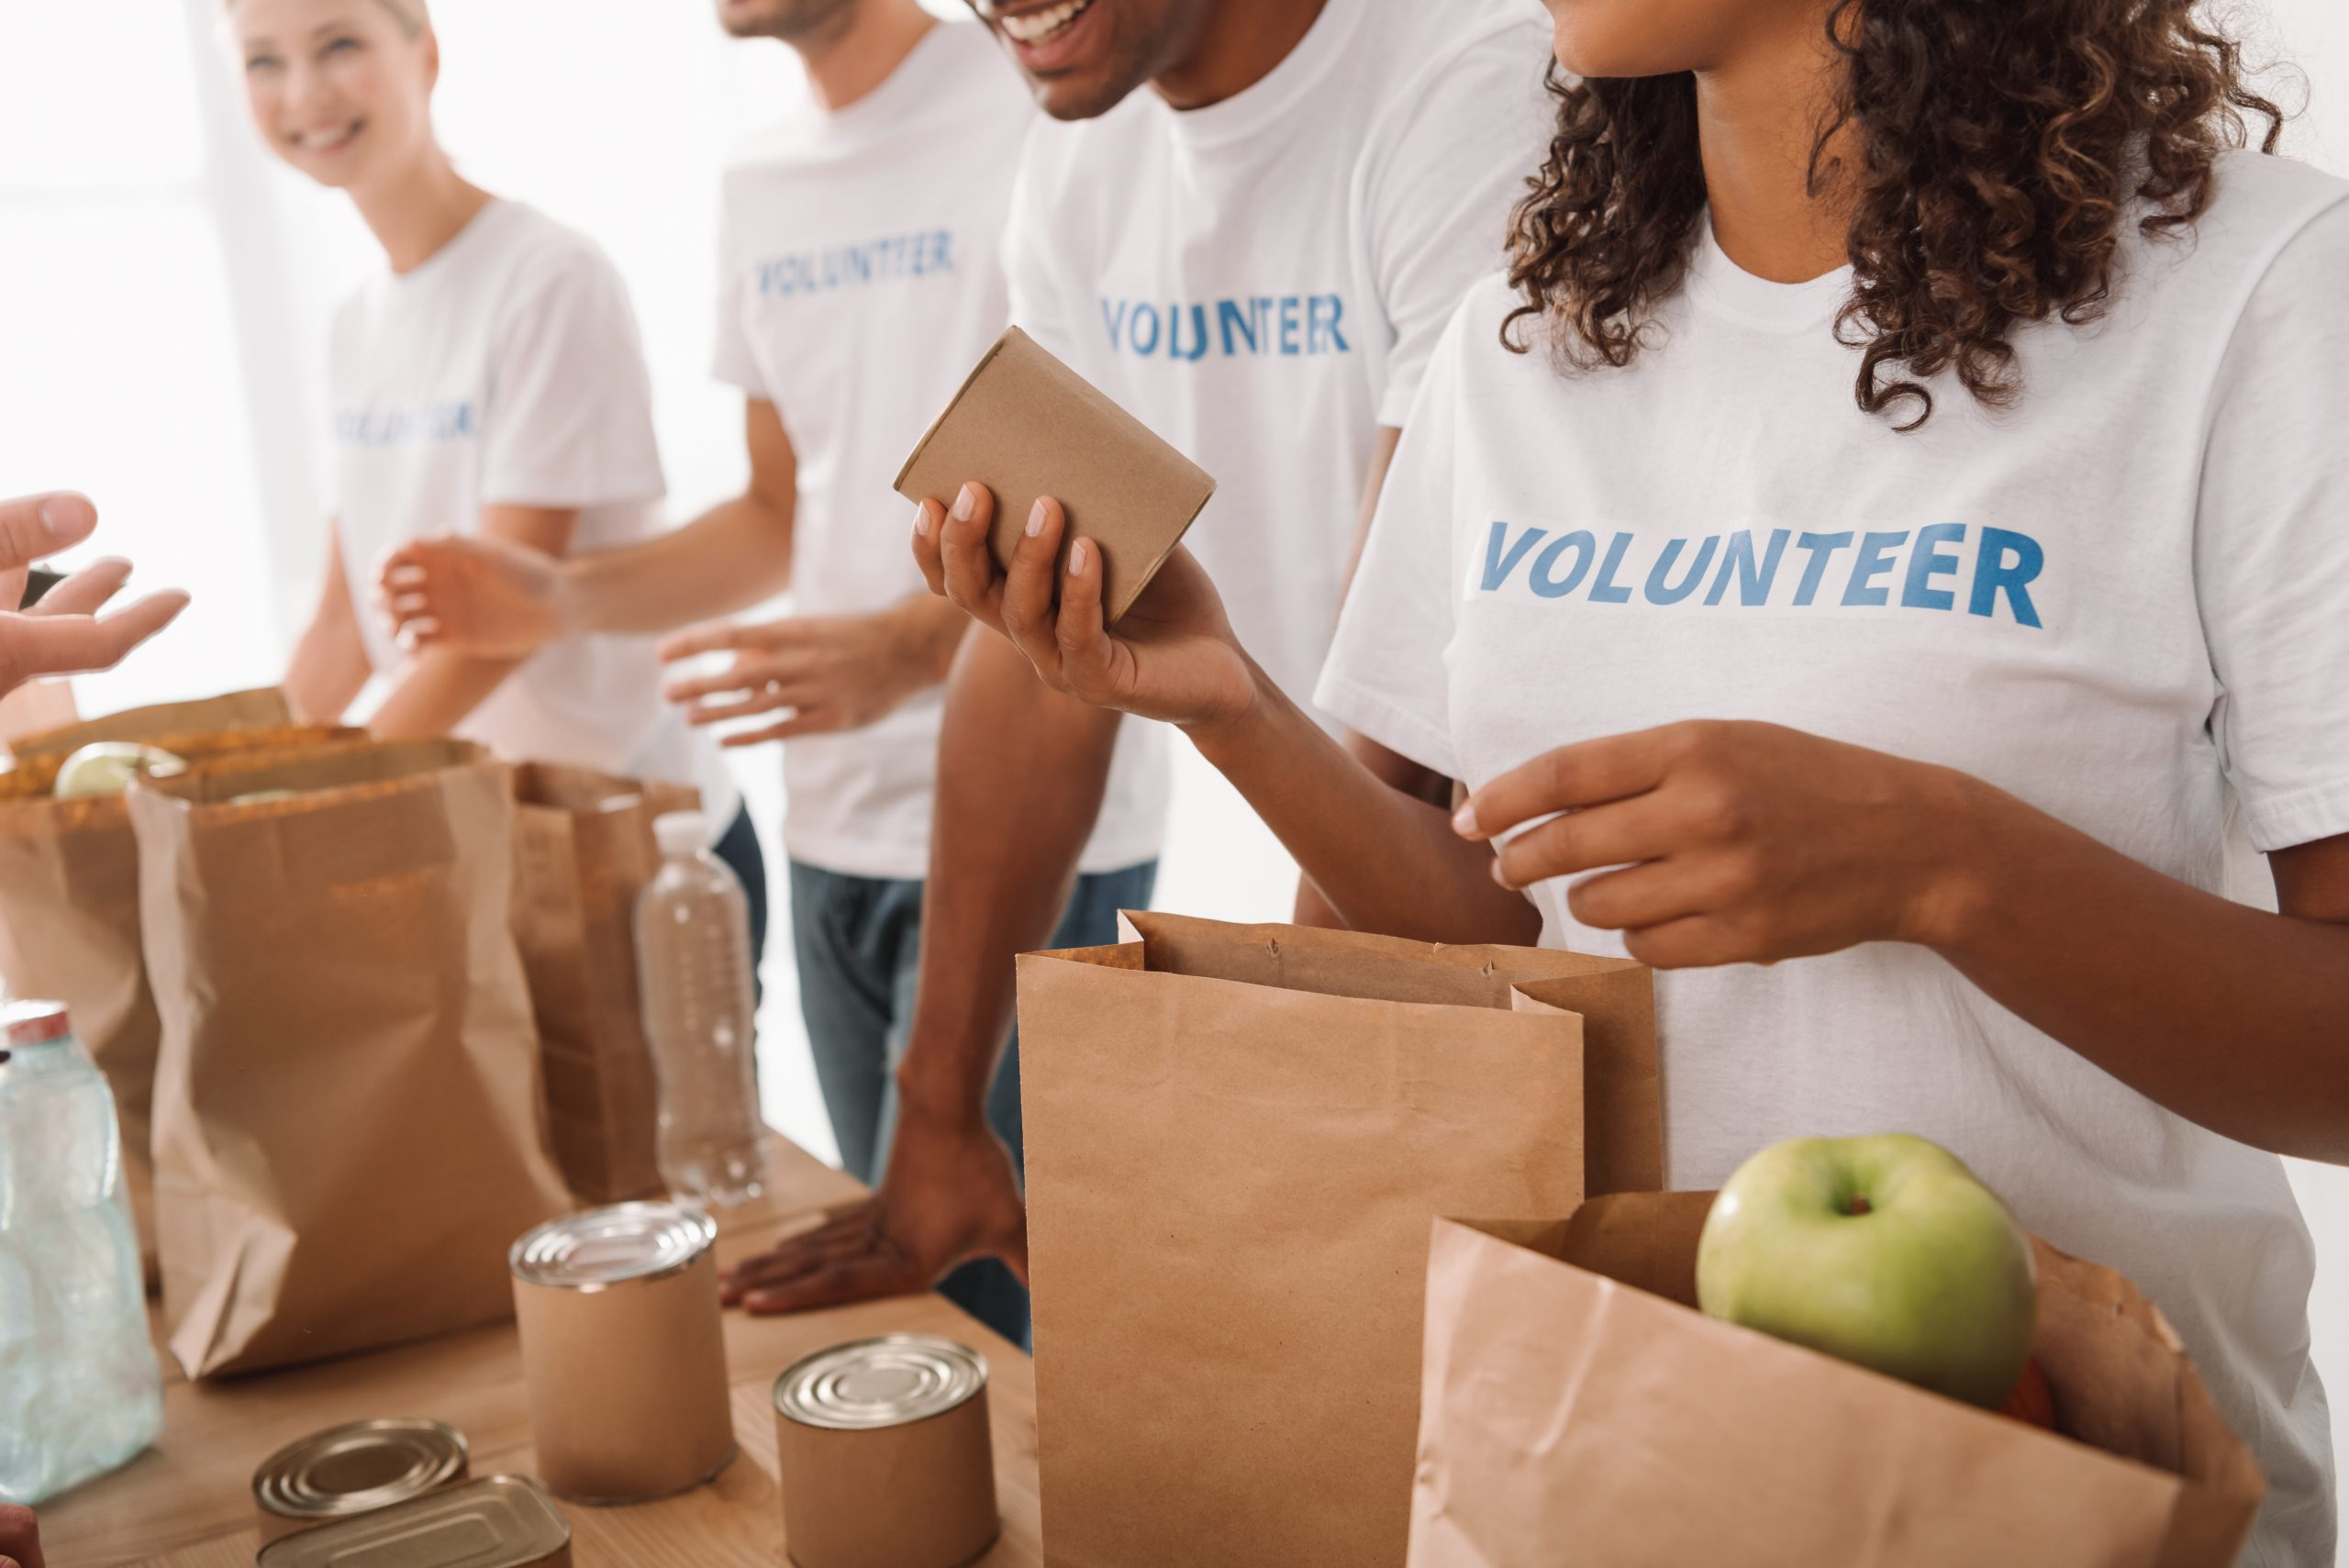 Continued food distribution in North Texas Urged